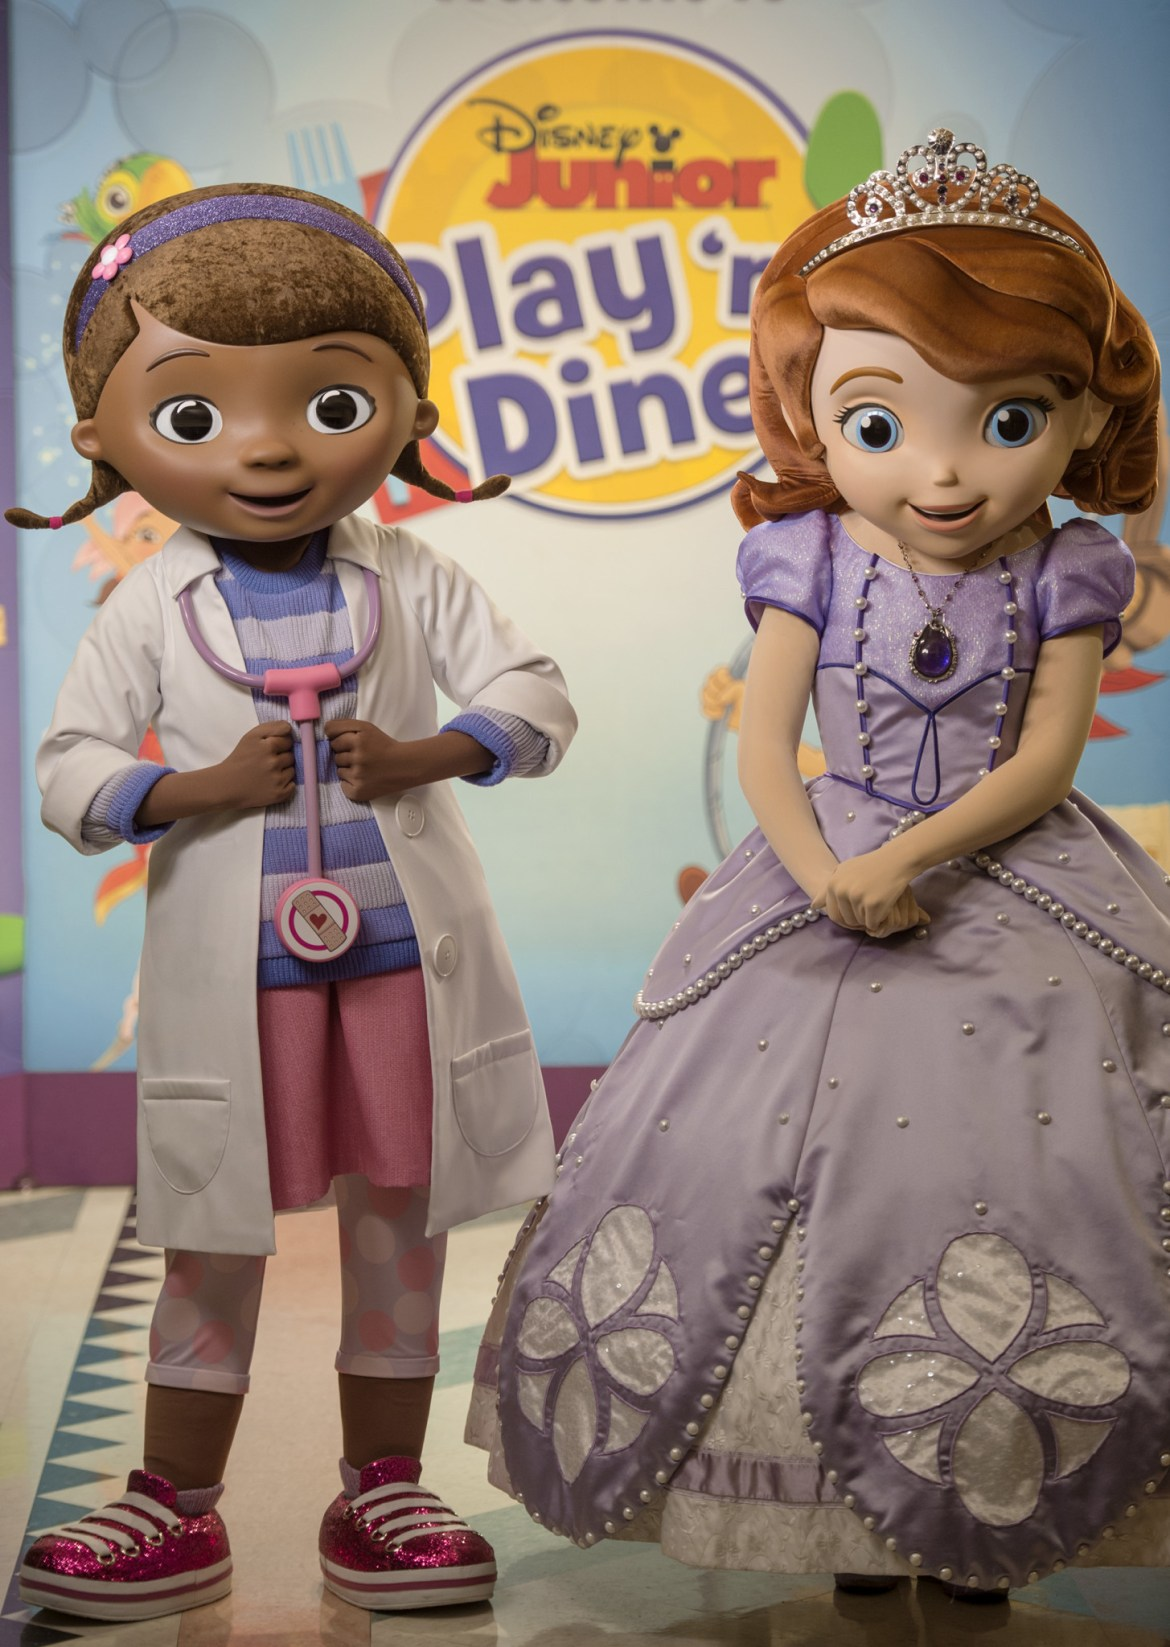 Disney Junior Play 'n Dine Is Like a Dream Come True for Little Ones